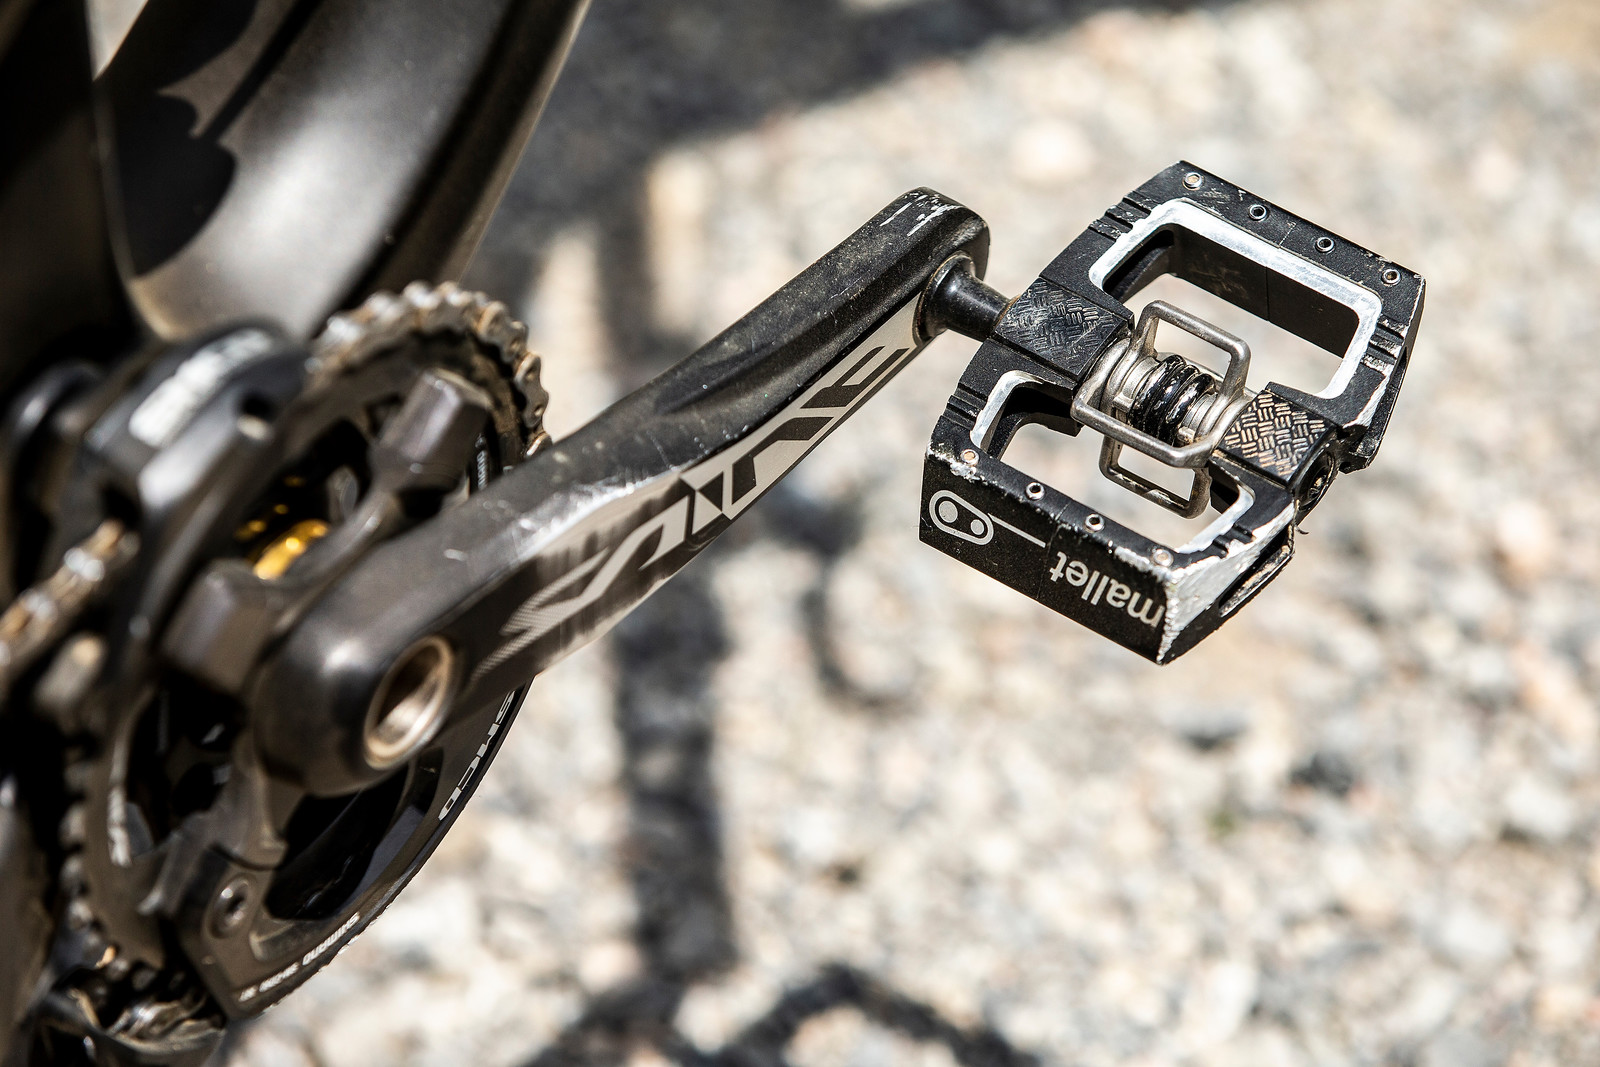 Crank Brothers Mallet DH Pedals - WINNING BIKE - Tahnee Seagrave's Transition TR11 - Mountain Biking Pictures - Vital MTB